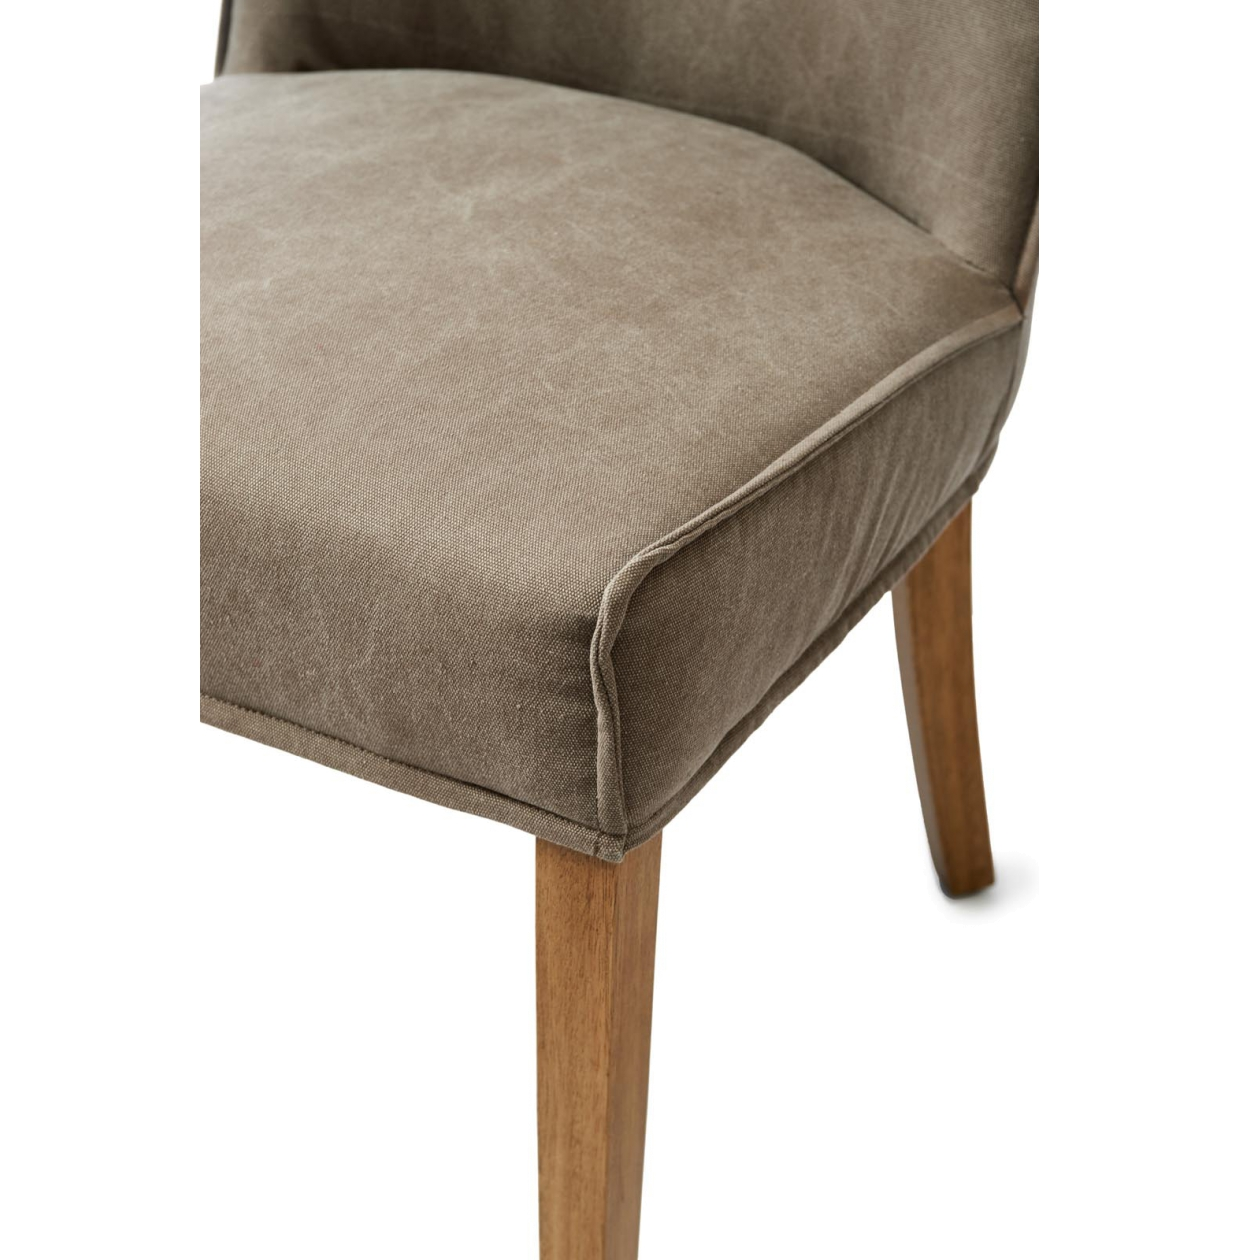 Bridge Lane Dining Chair cotton mauve/ Rivièra Maison